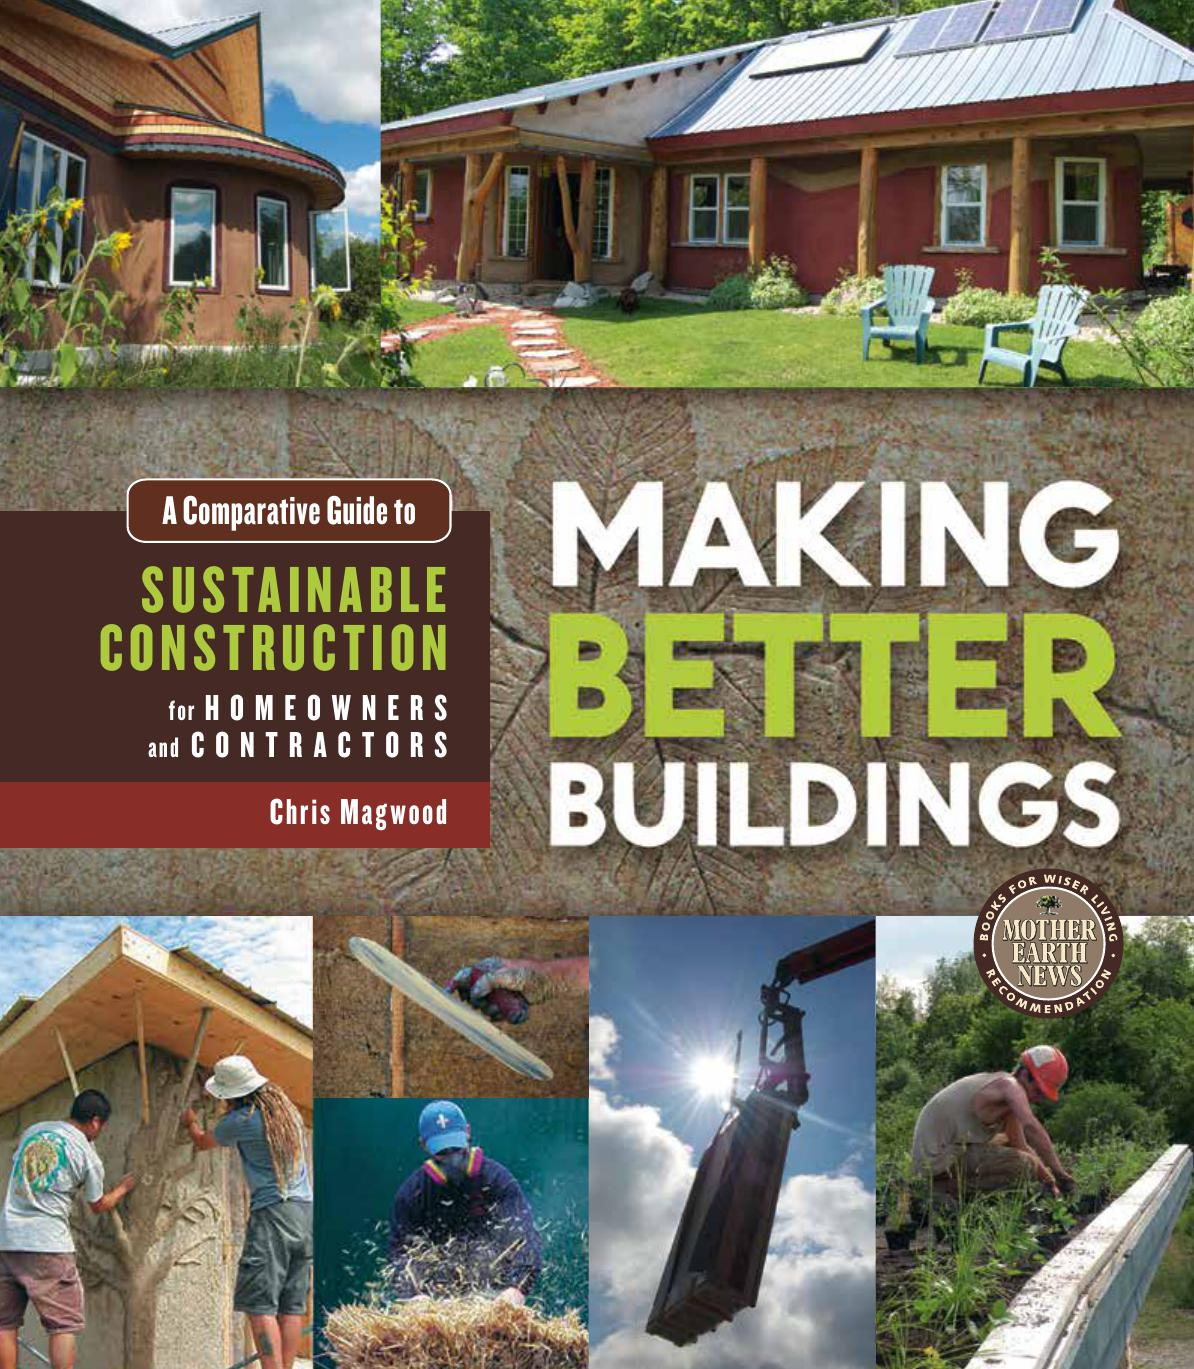 Making Better Buildings: A Comparative Guide to Sustainable Construction for Homeowners and Contractors free download